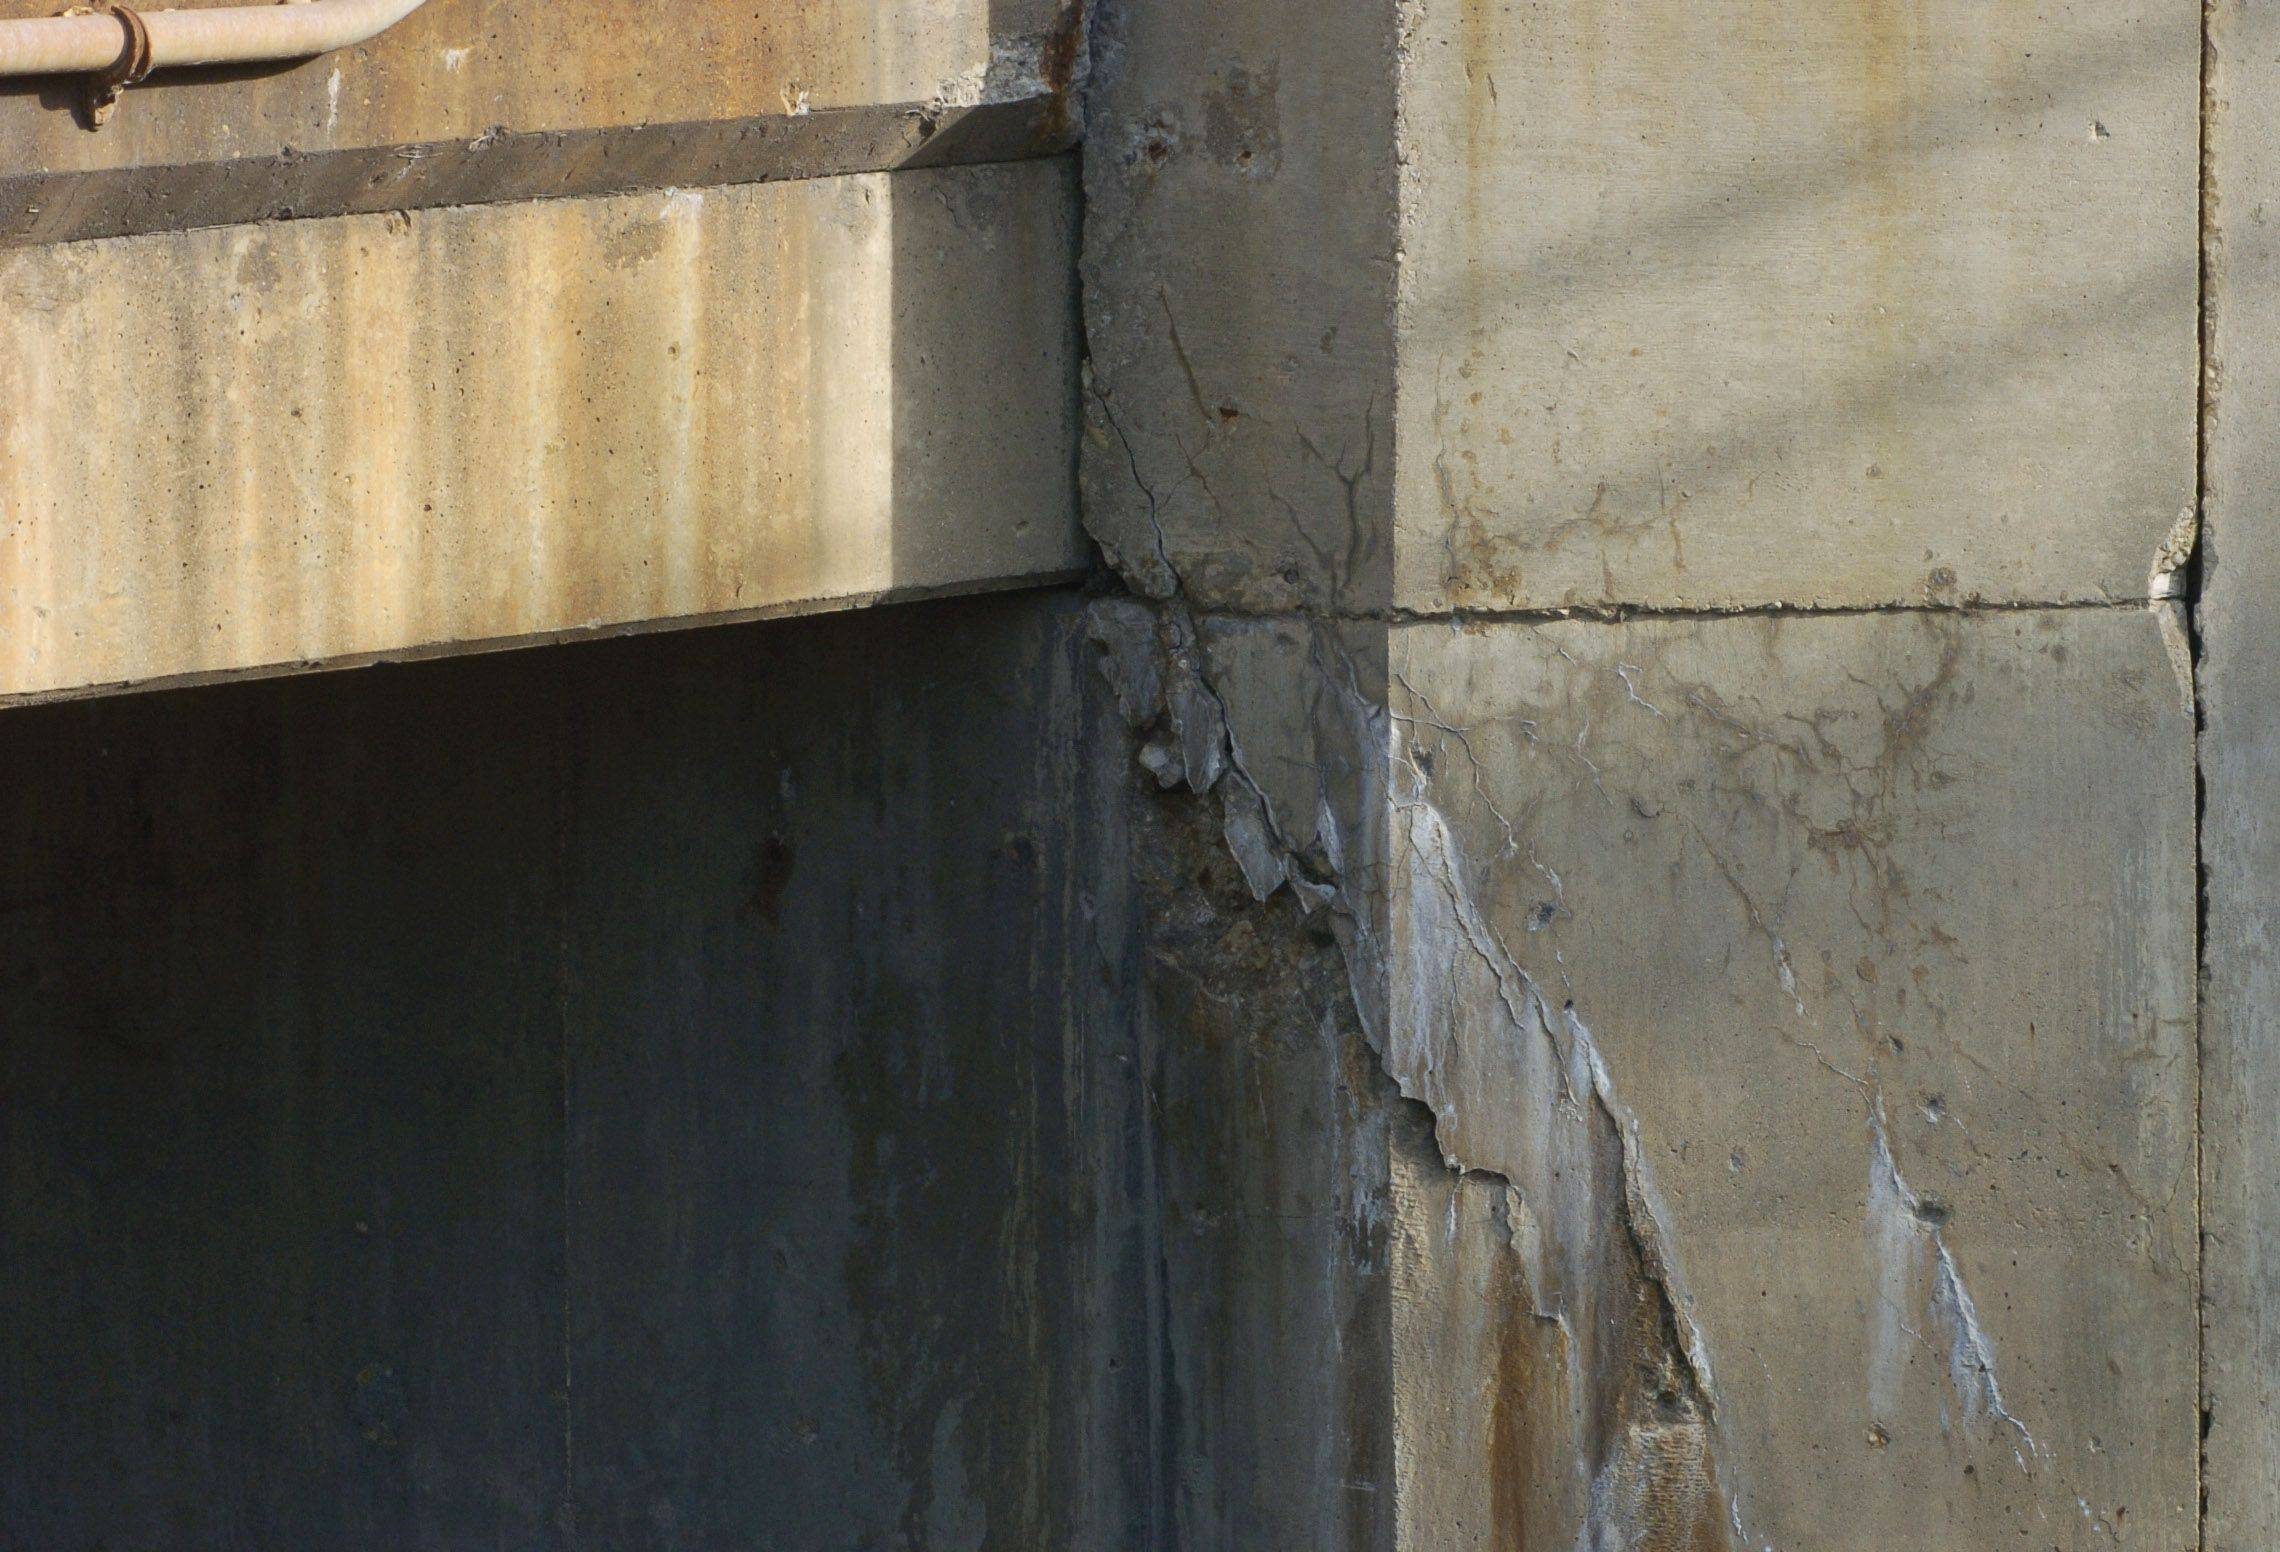 Damage to vertical support structures of a bridge, like the cracks seen on the concrete supports of the bridge carrying Algonquin Road over Salt Creek in Rolling Meadows, can be more expensive than other deterioration.